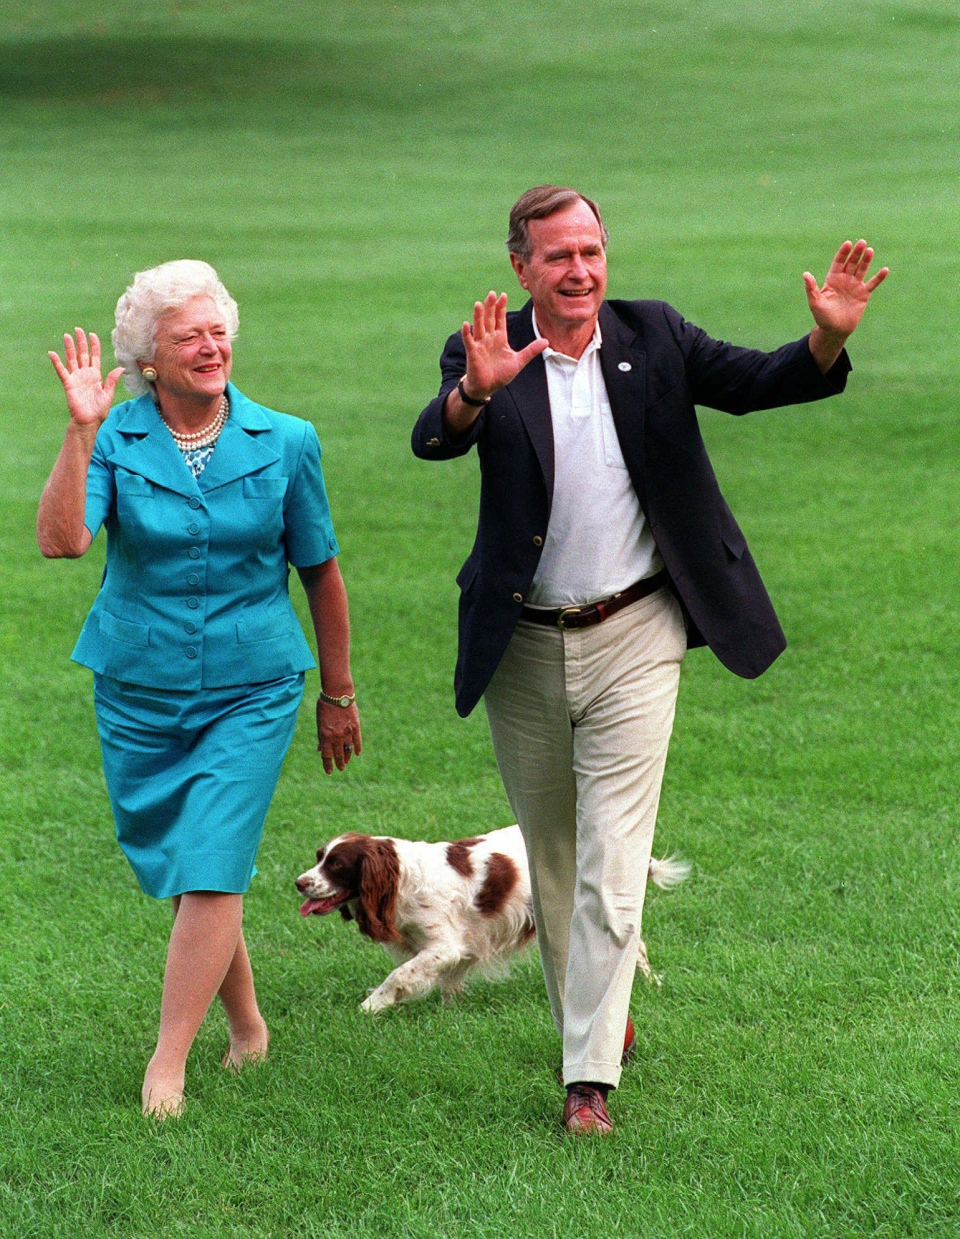 Former U.S. president Bush, right, and former U.S. first lady Barbara Bush walk with their dog, Millie, across the South Lawn as they return to the White House on Aug. 24, 1992. (AP / Scott Applewhite)